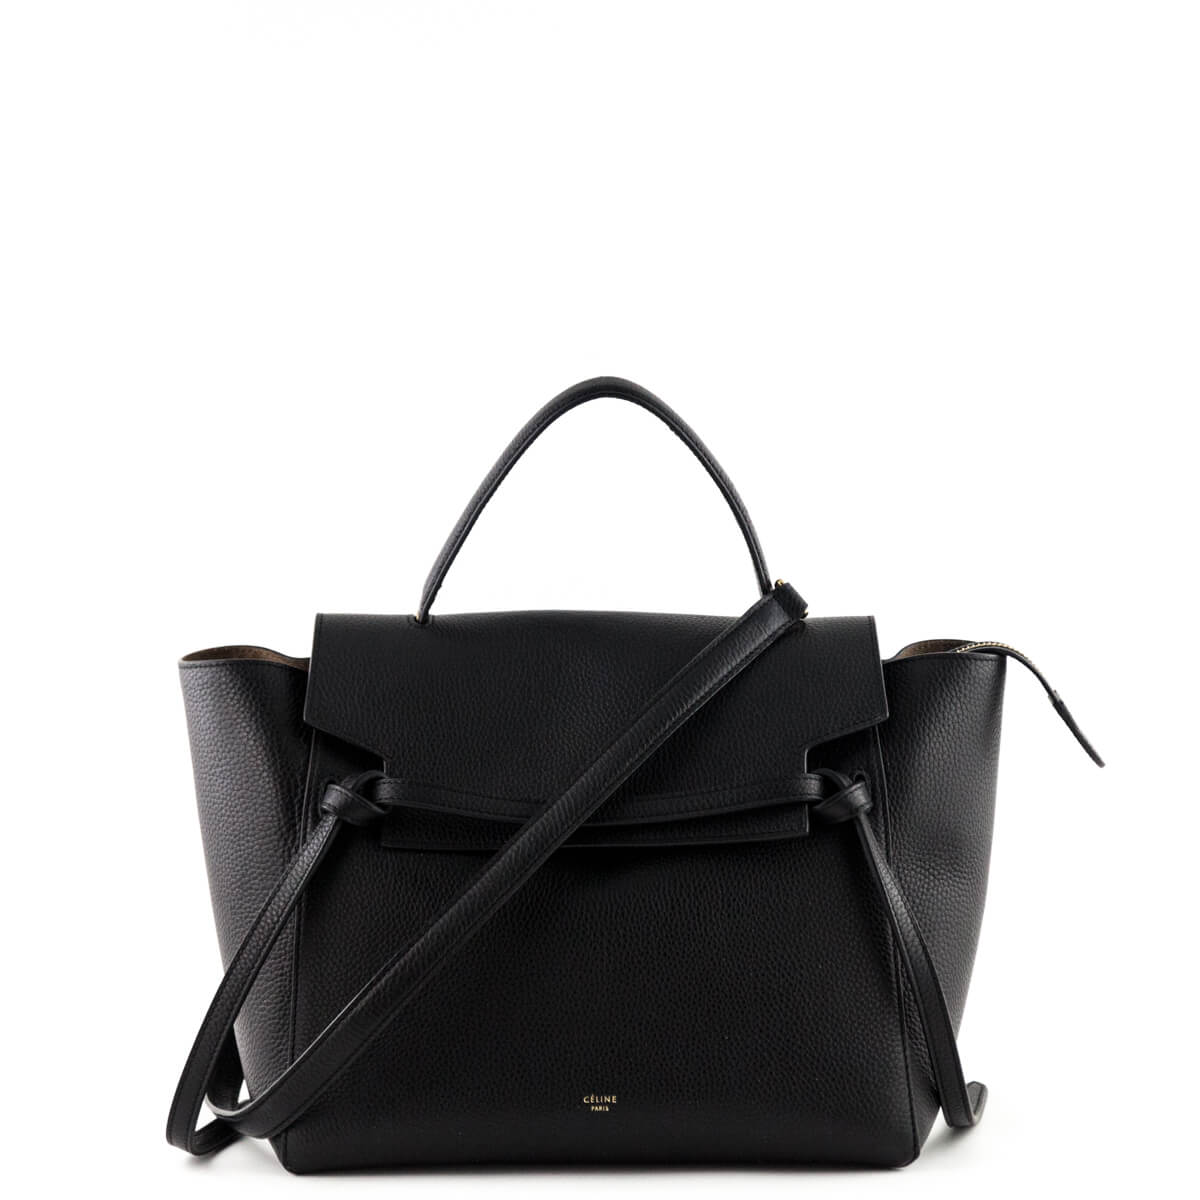 97d47a03c Celine Black Calfskin Medium Belt Bag - LOVE that BAG - Preowned Authentic  Designer Handbags ...